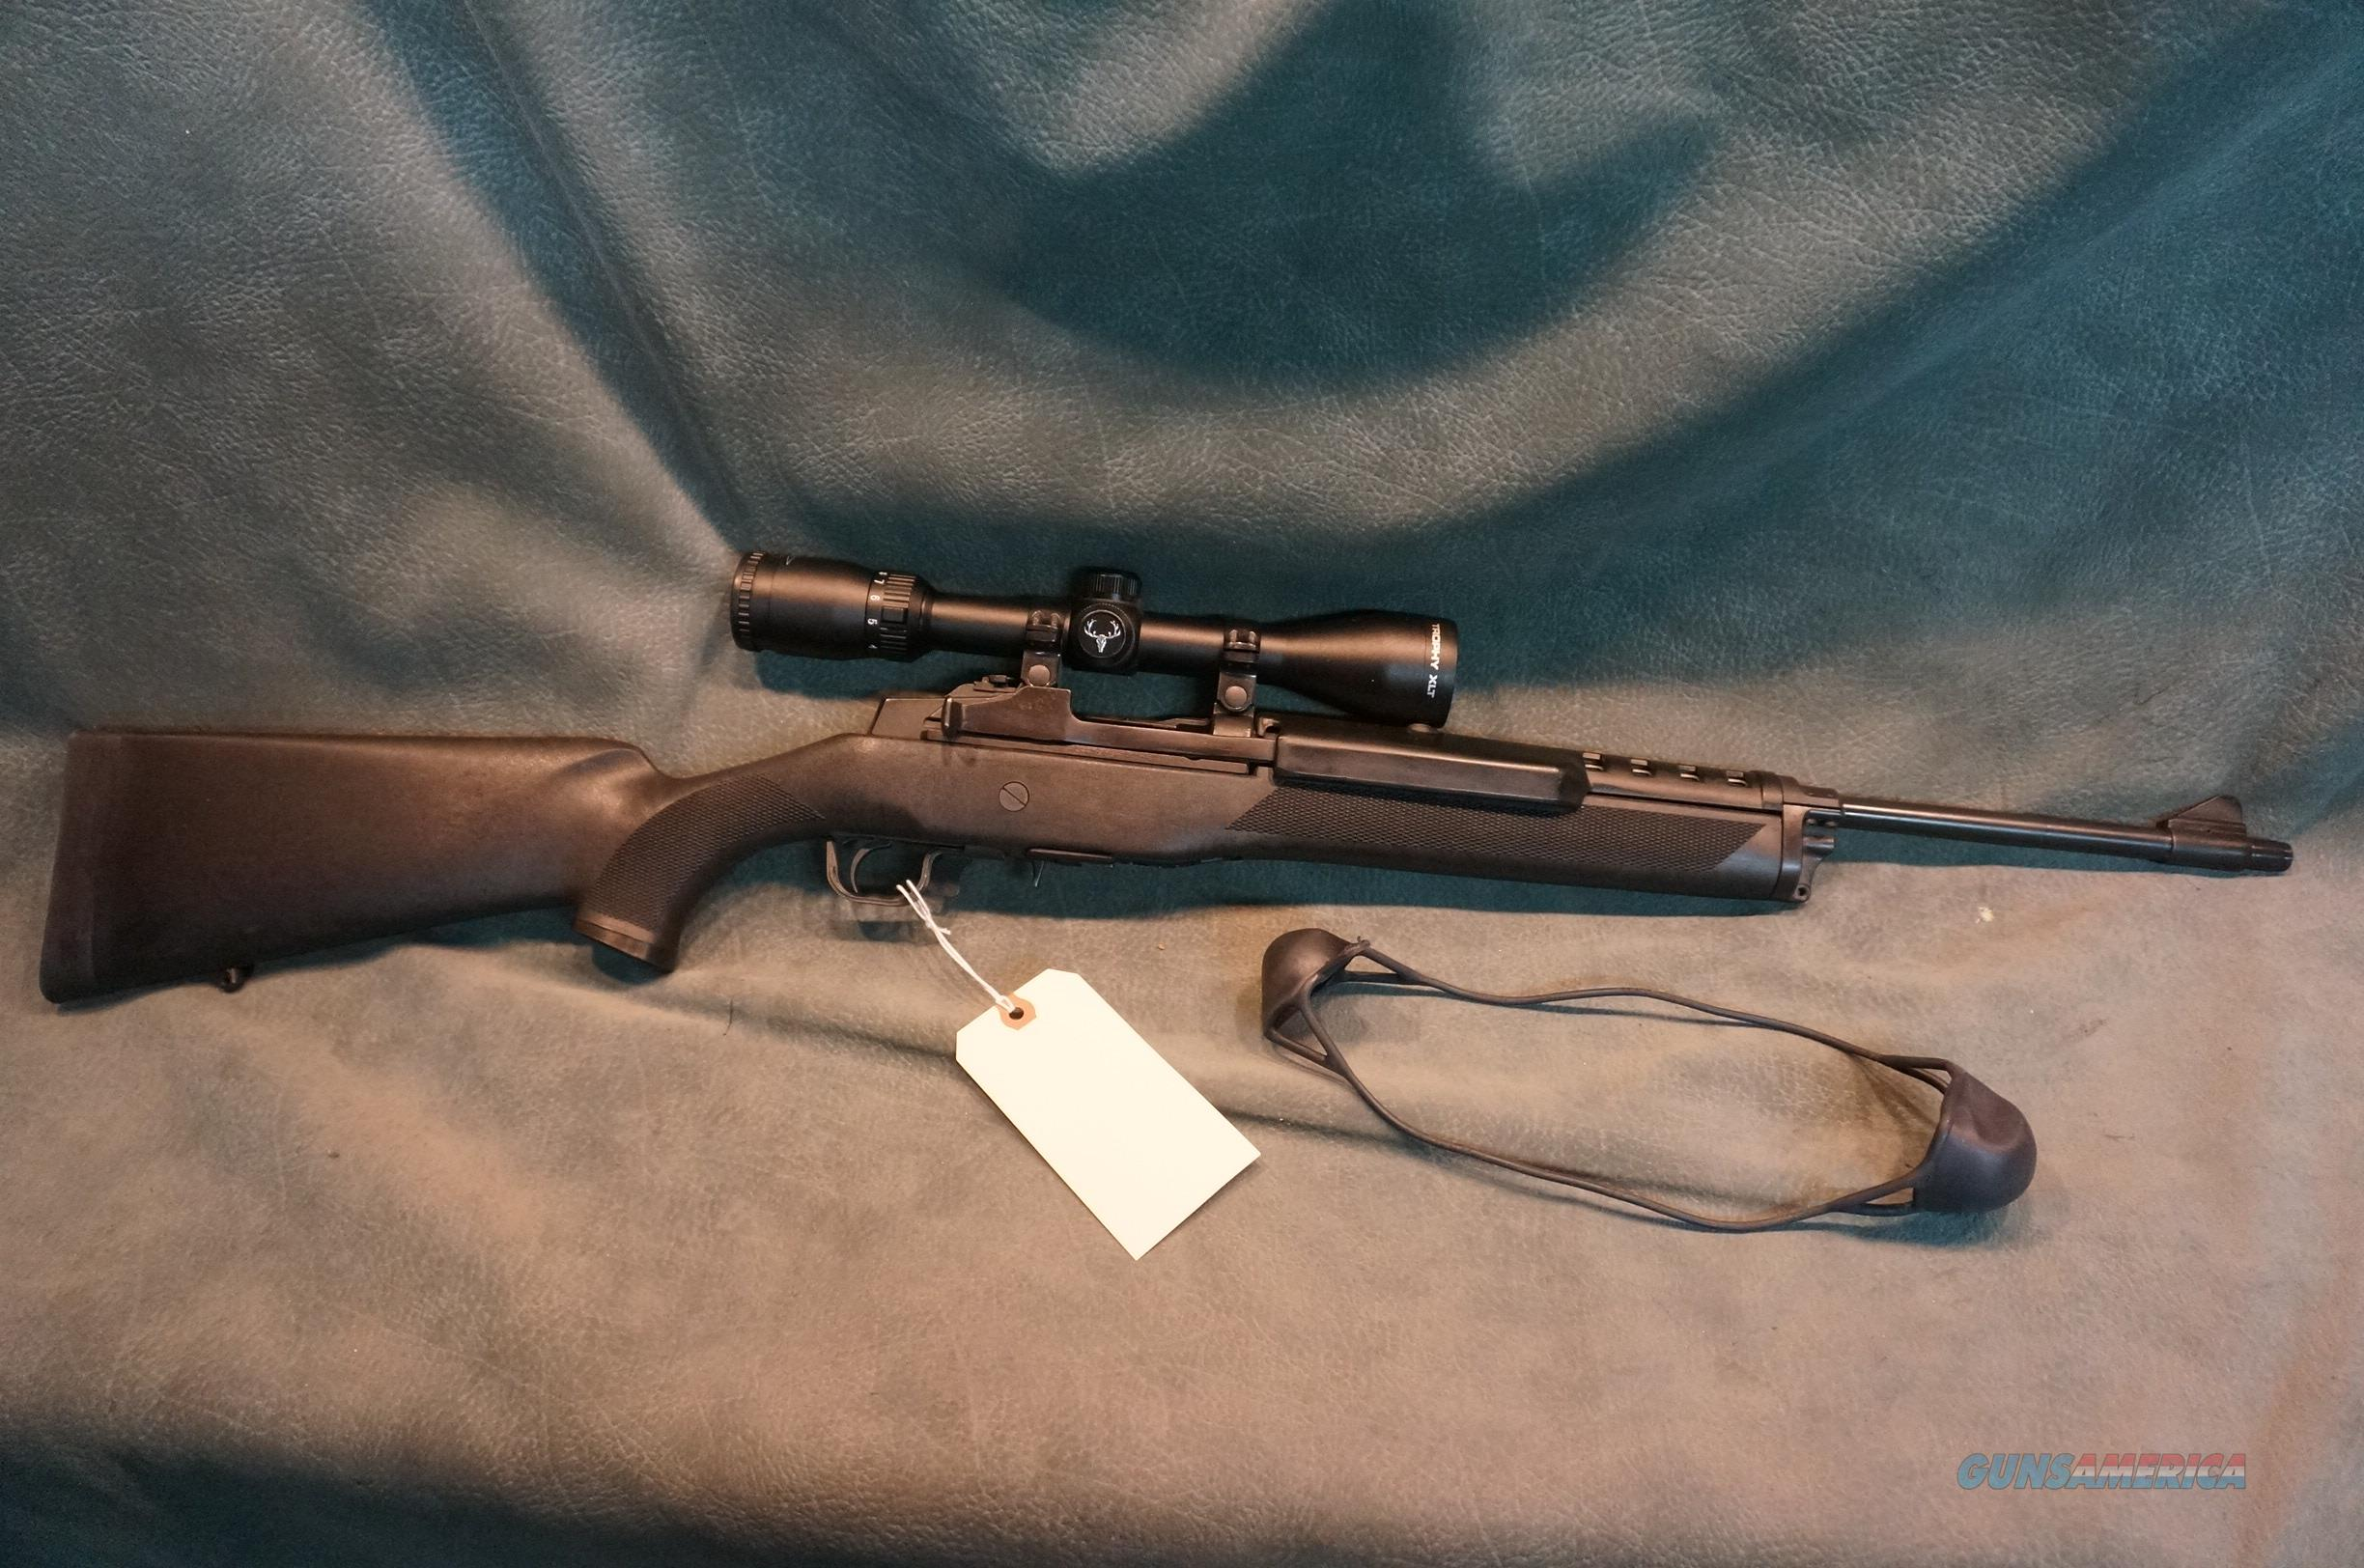 Ruger Mini 14 223 synthetic Ranch Rifle w/scope  Guns > Rifles > Ruger Rifles > Mini-14 Type